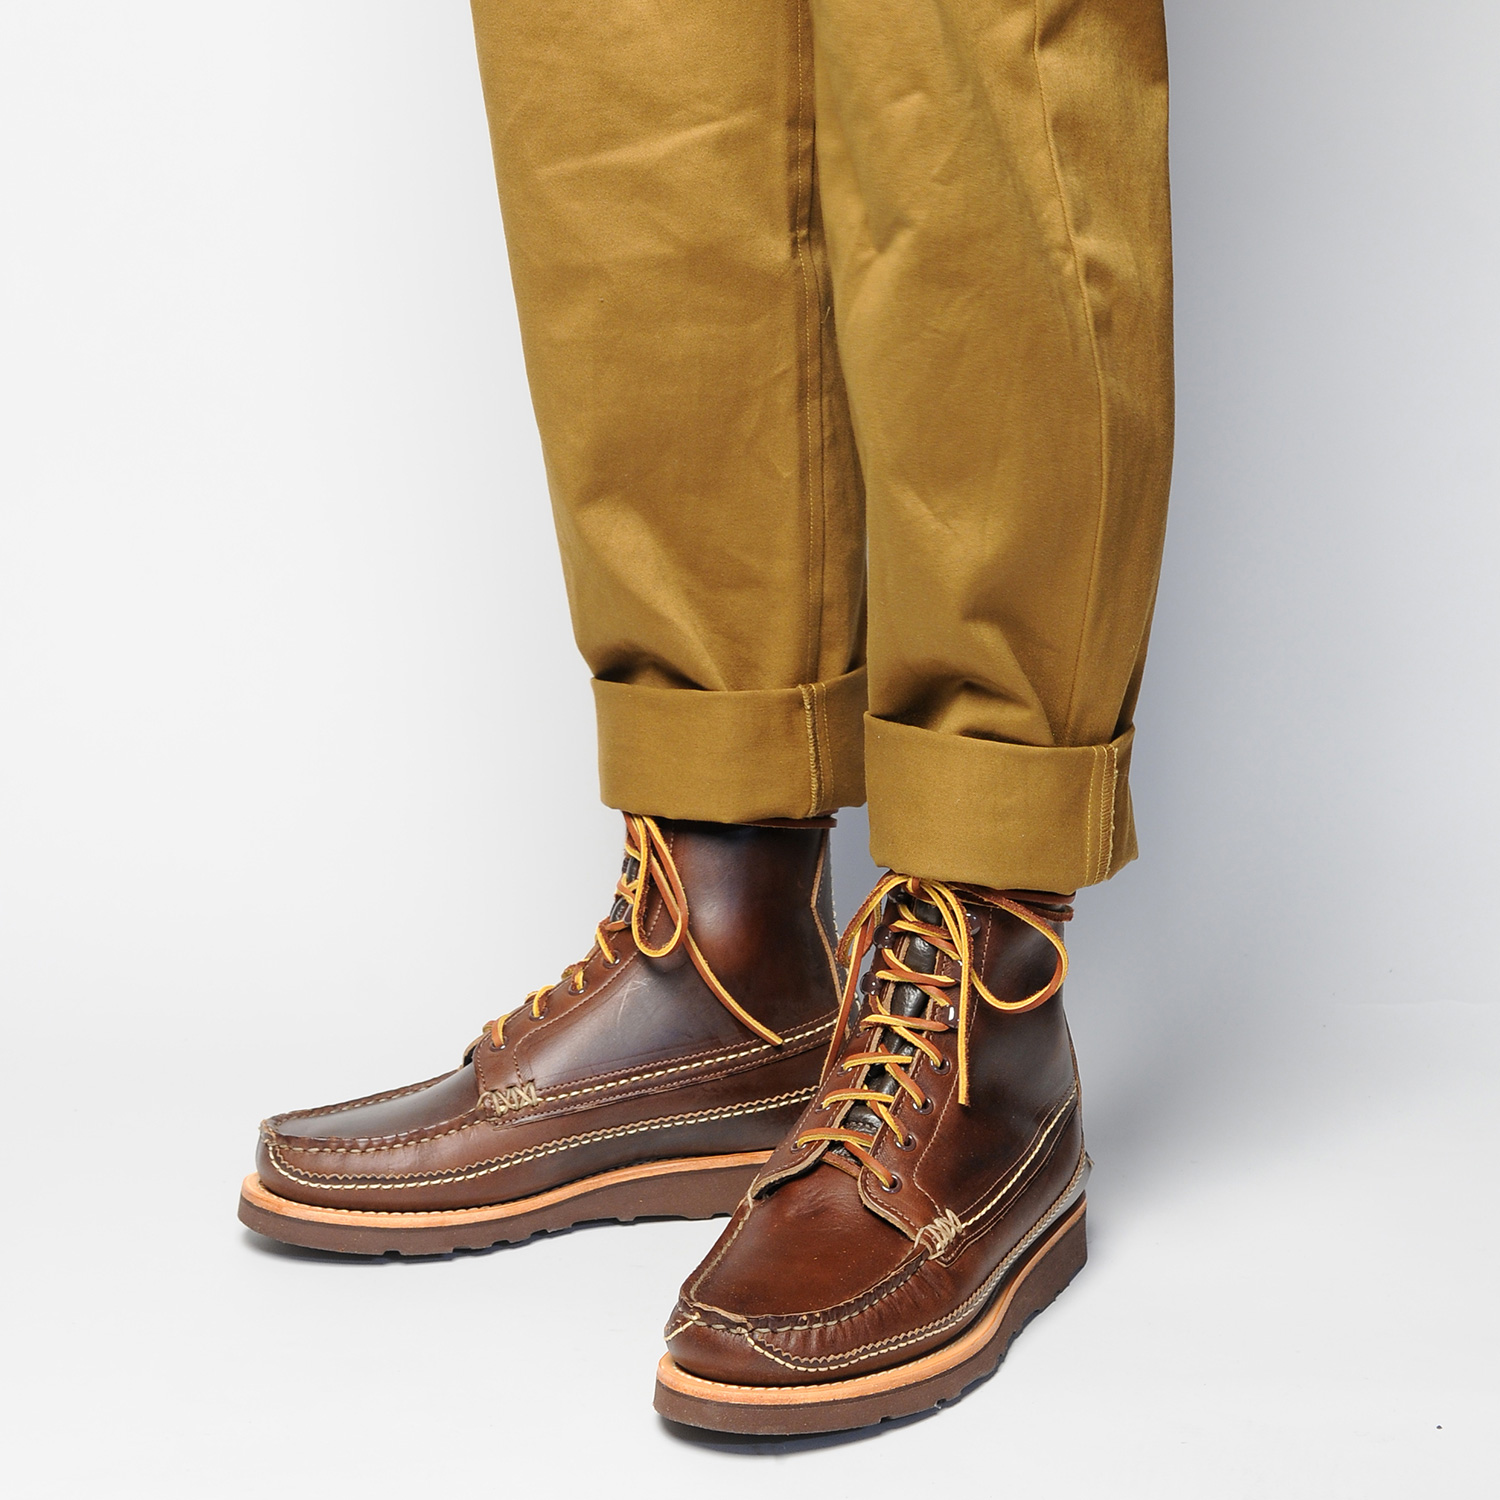 MAINE-GUIDE-DB-BOOTS,-G-BROWN,-WEAR-ANGLE.jpg